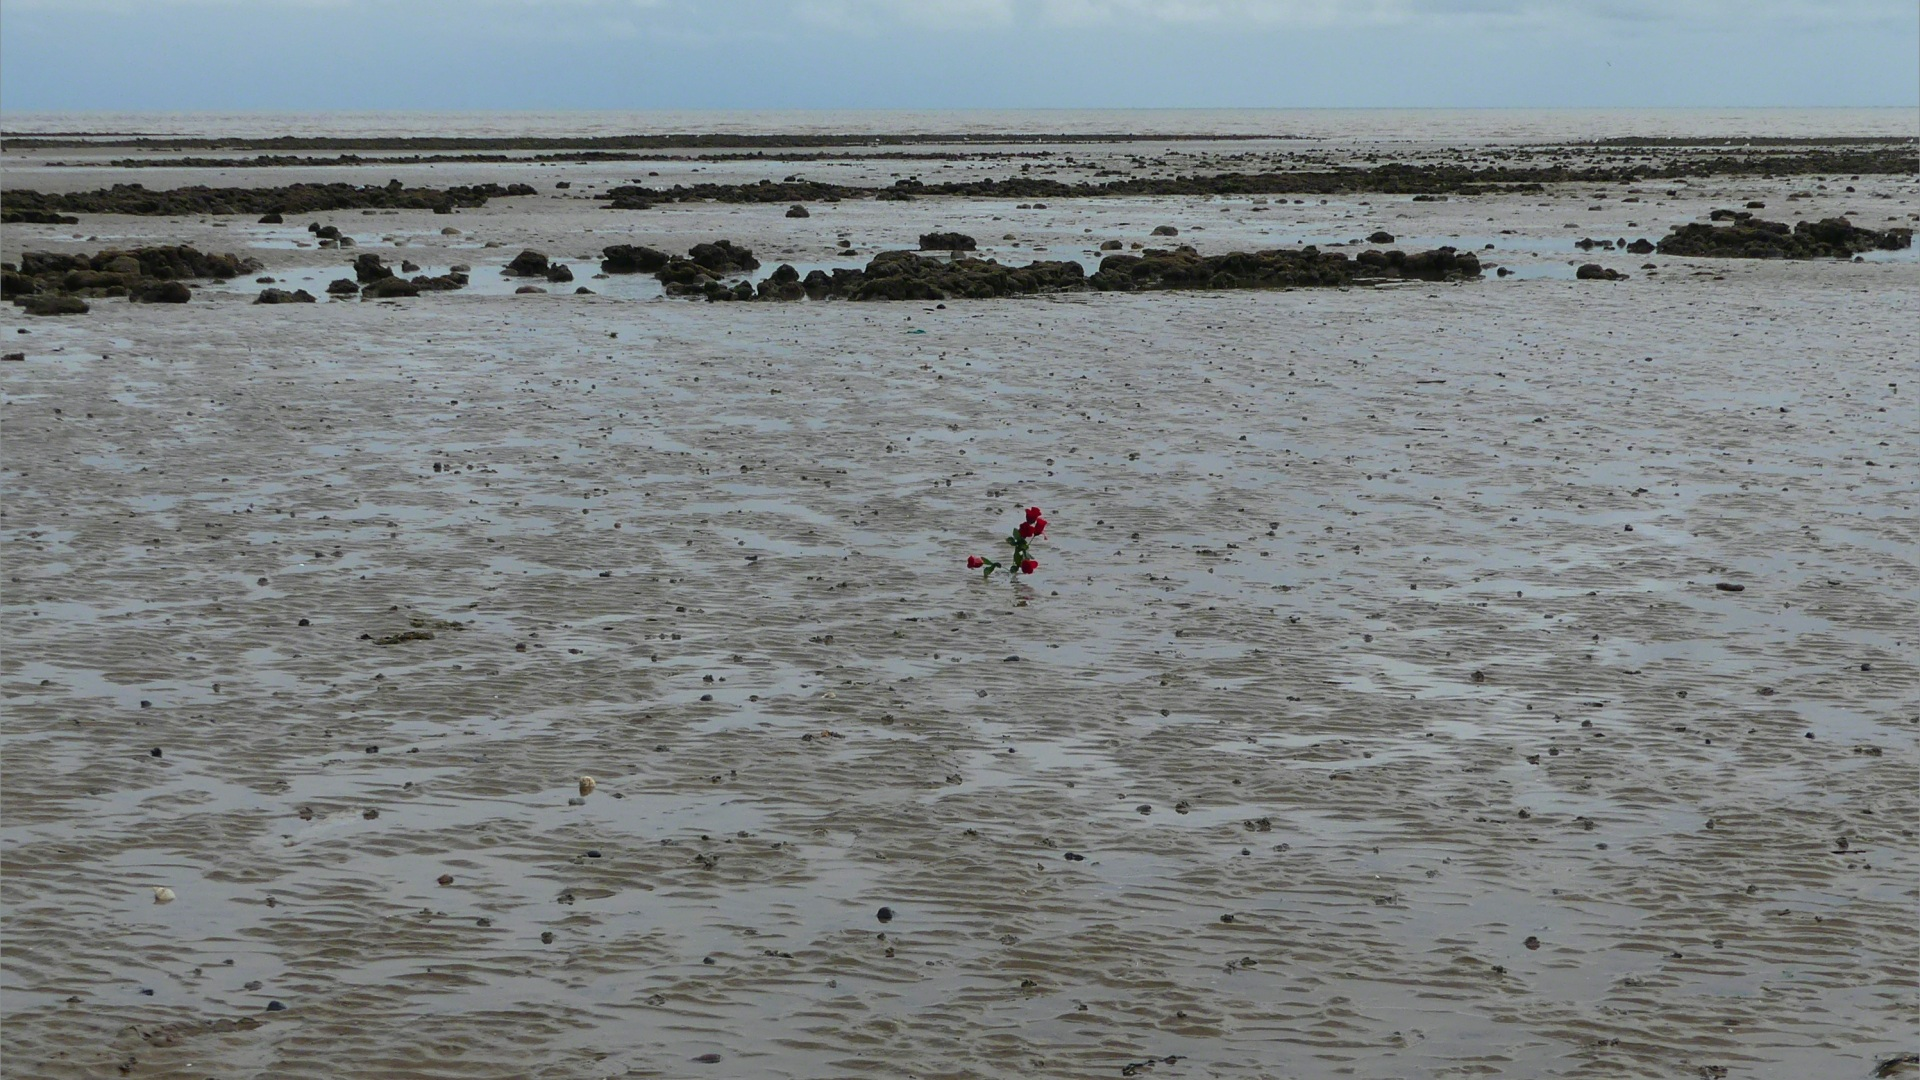 A small patch of red in the low-tide mud